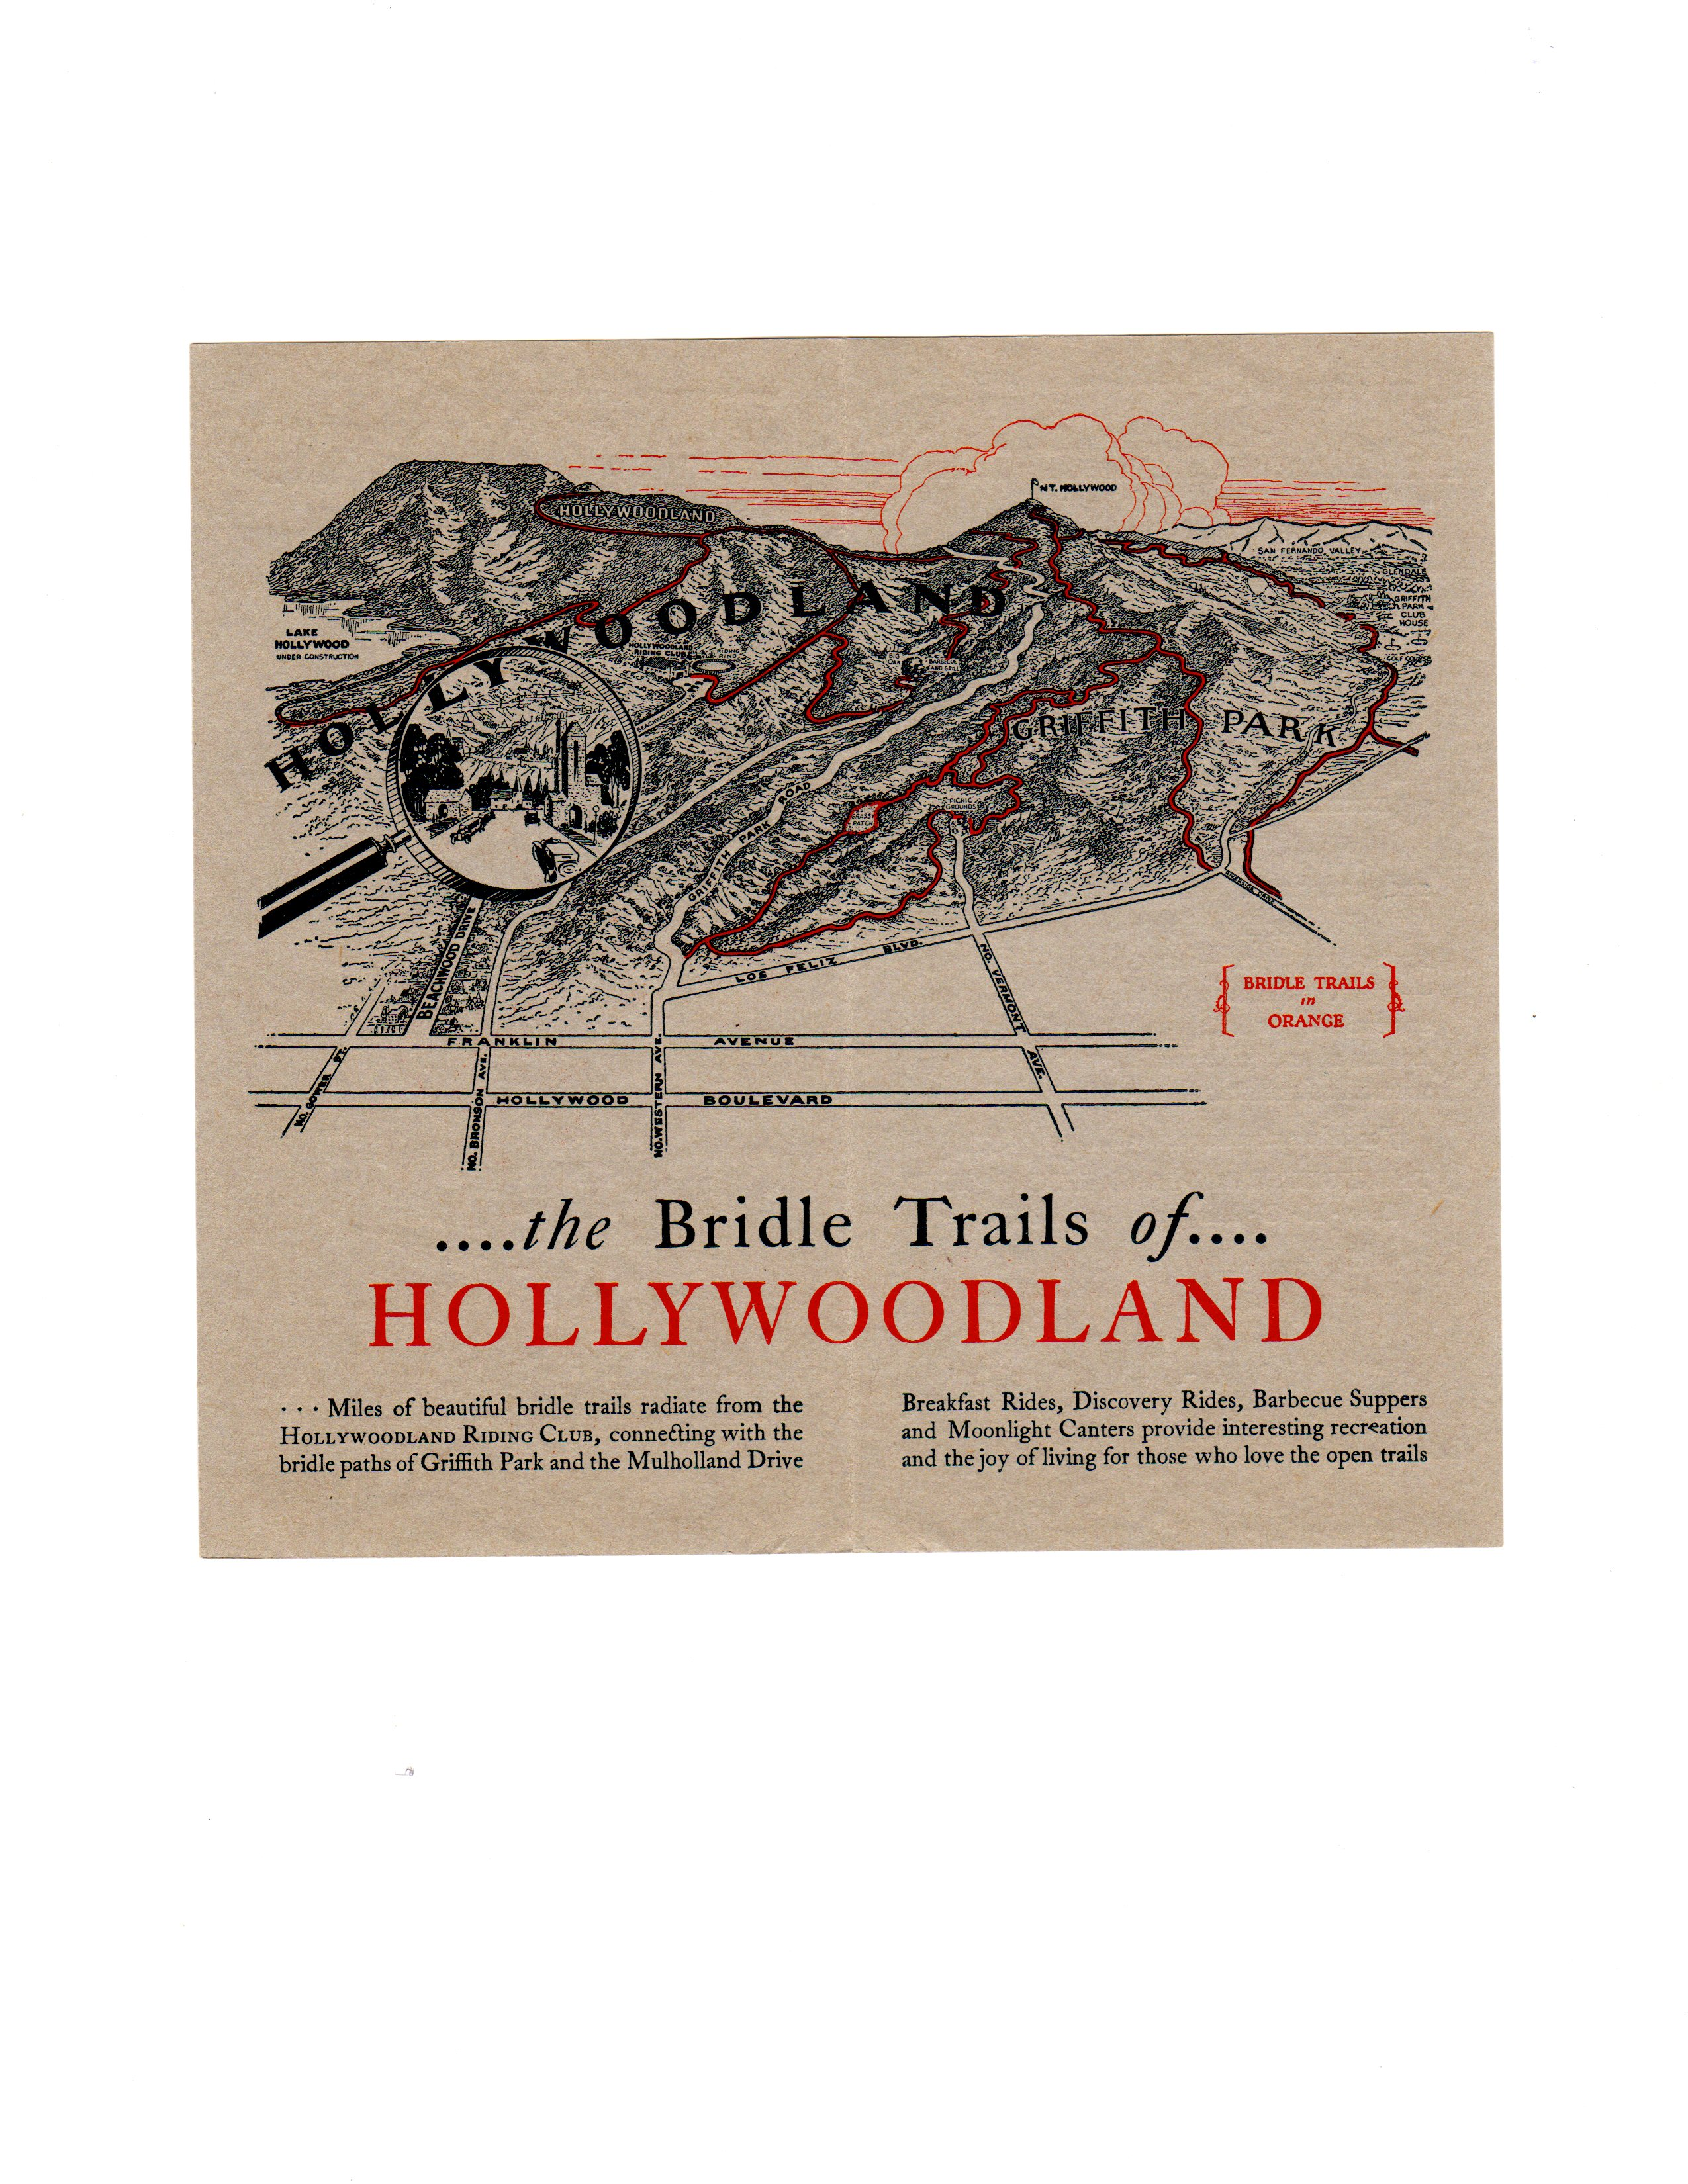 Inside the Pamphlet, a Map of Hollywoodland/Hope Anderson Productions